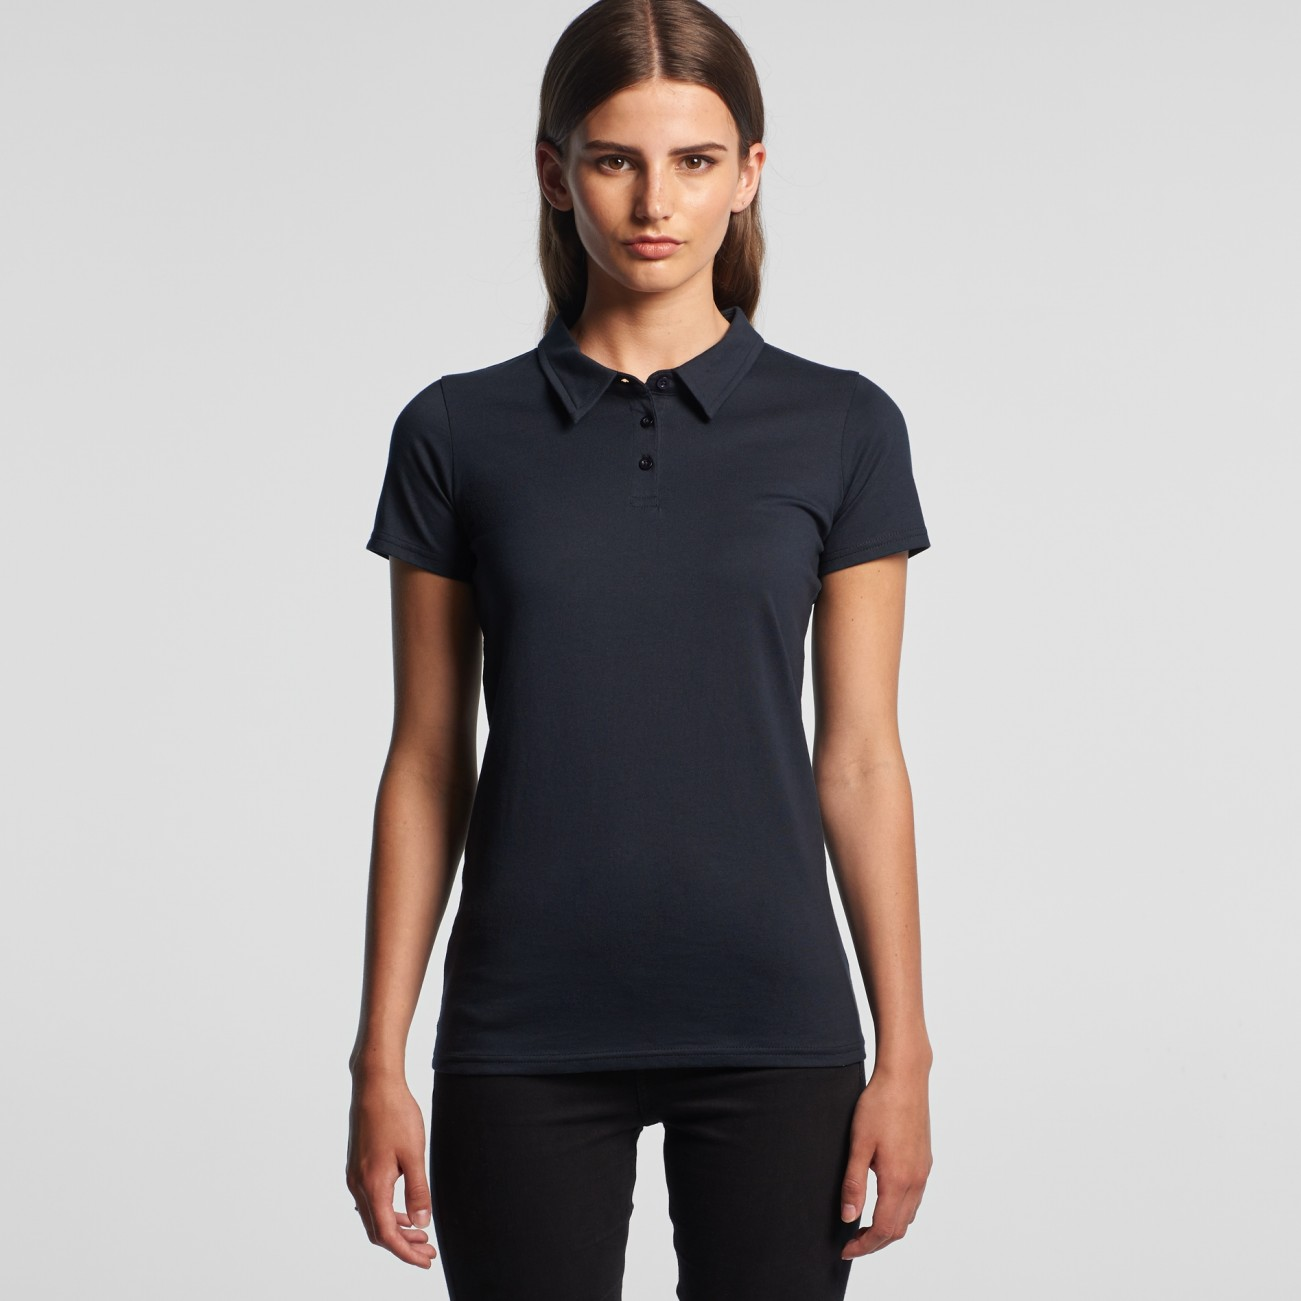 4402_amy_polo_front.jpg